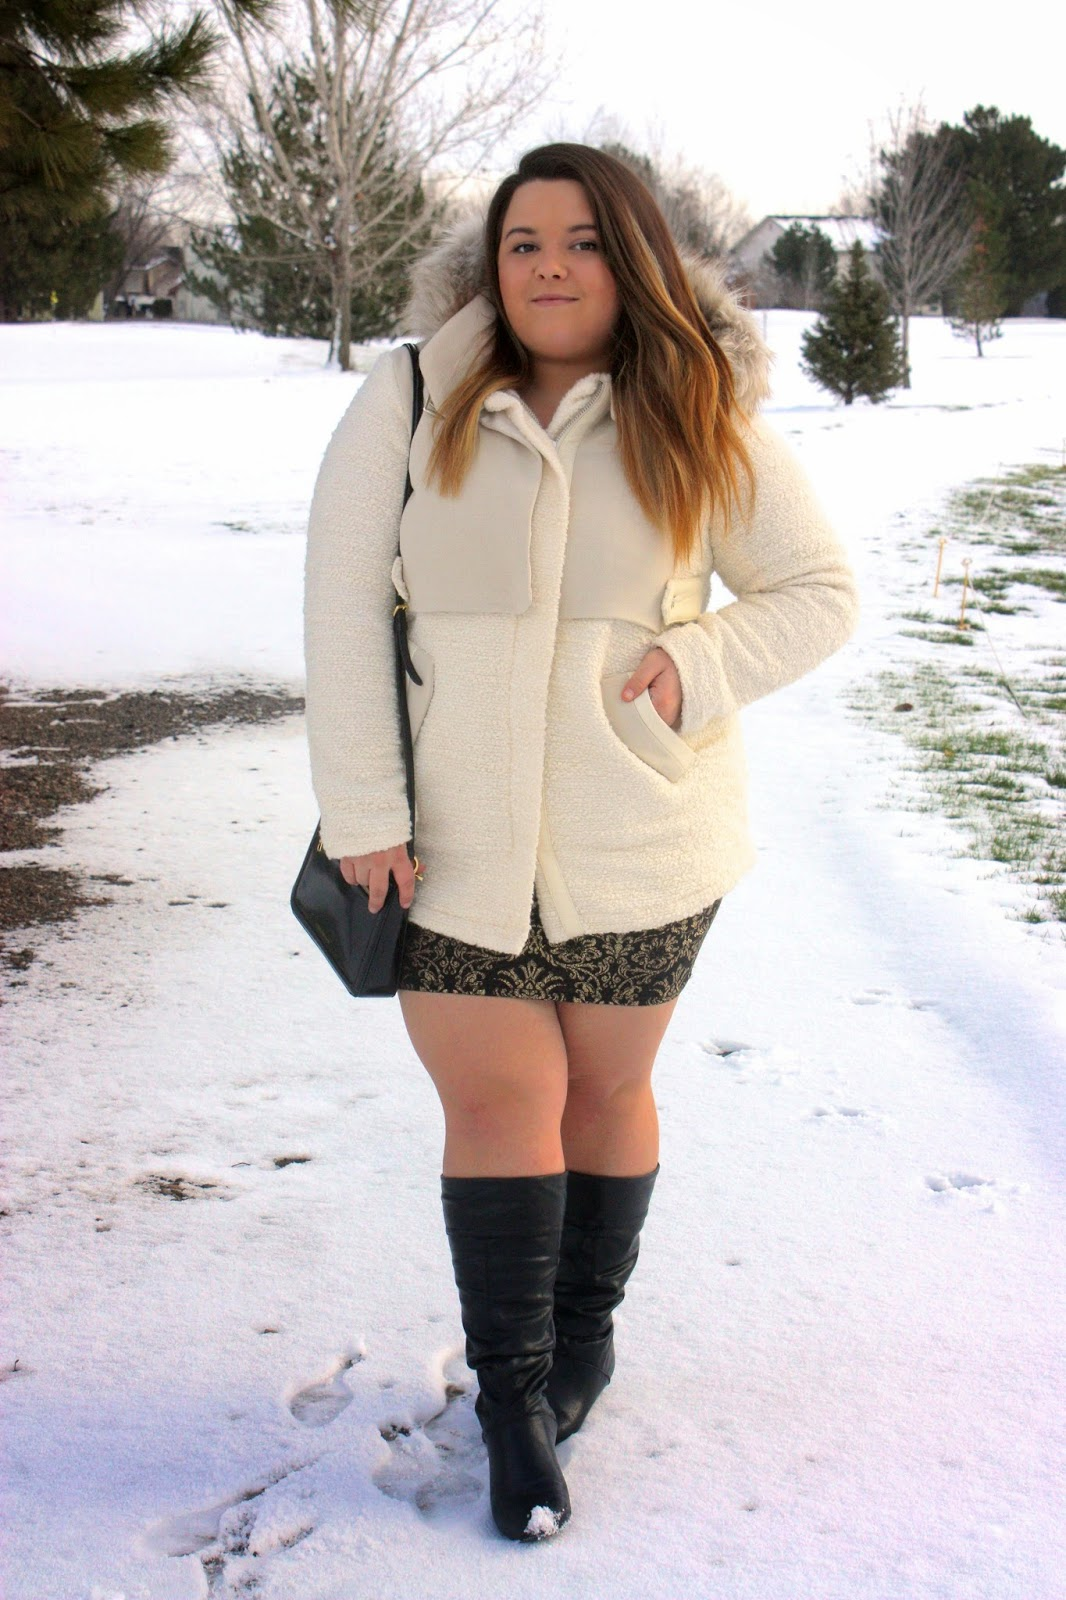 sandpoint single bbw women Search for local single big beautiful women in alaska online dating brings  singles together who may never otherwise meet it's a big world and the.